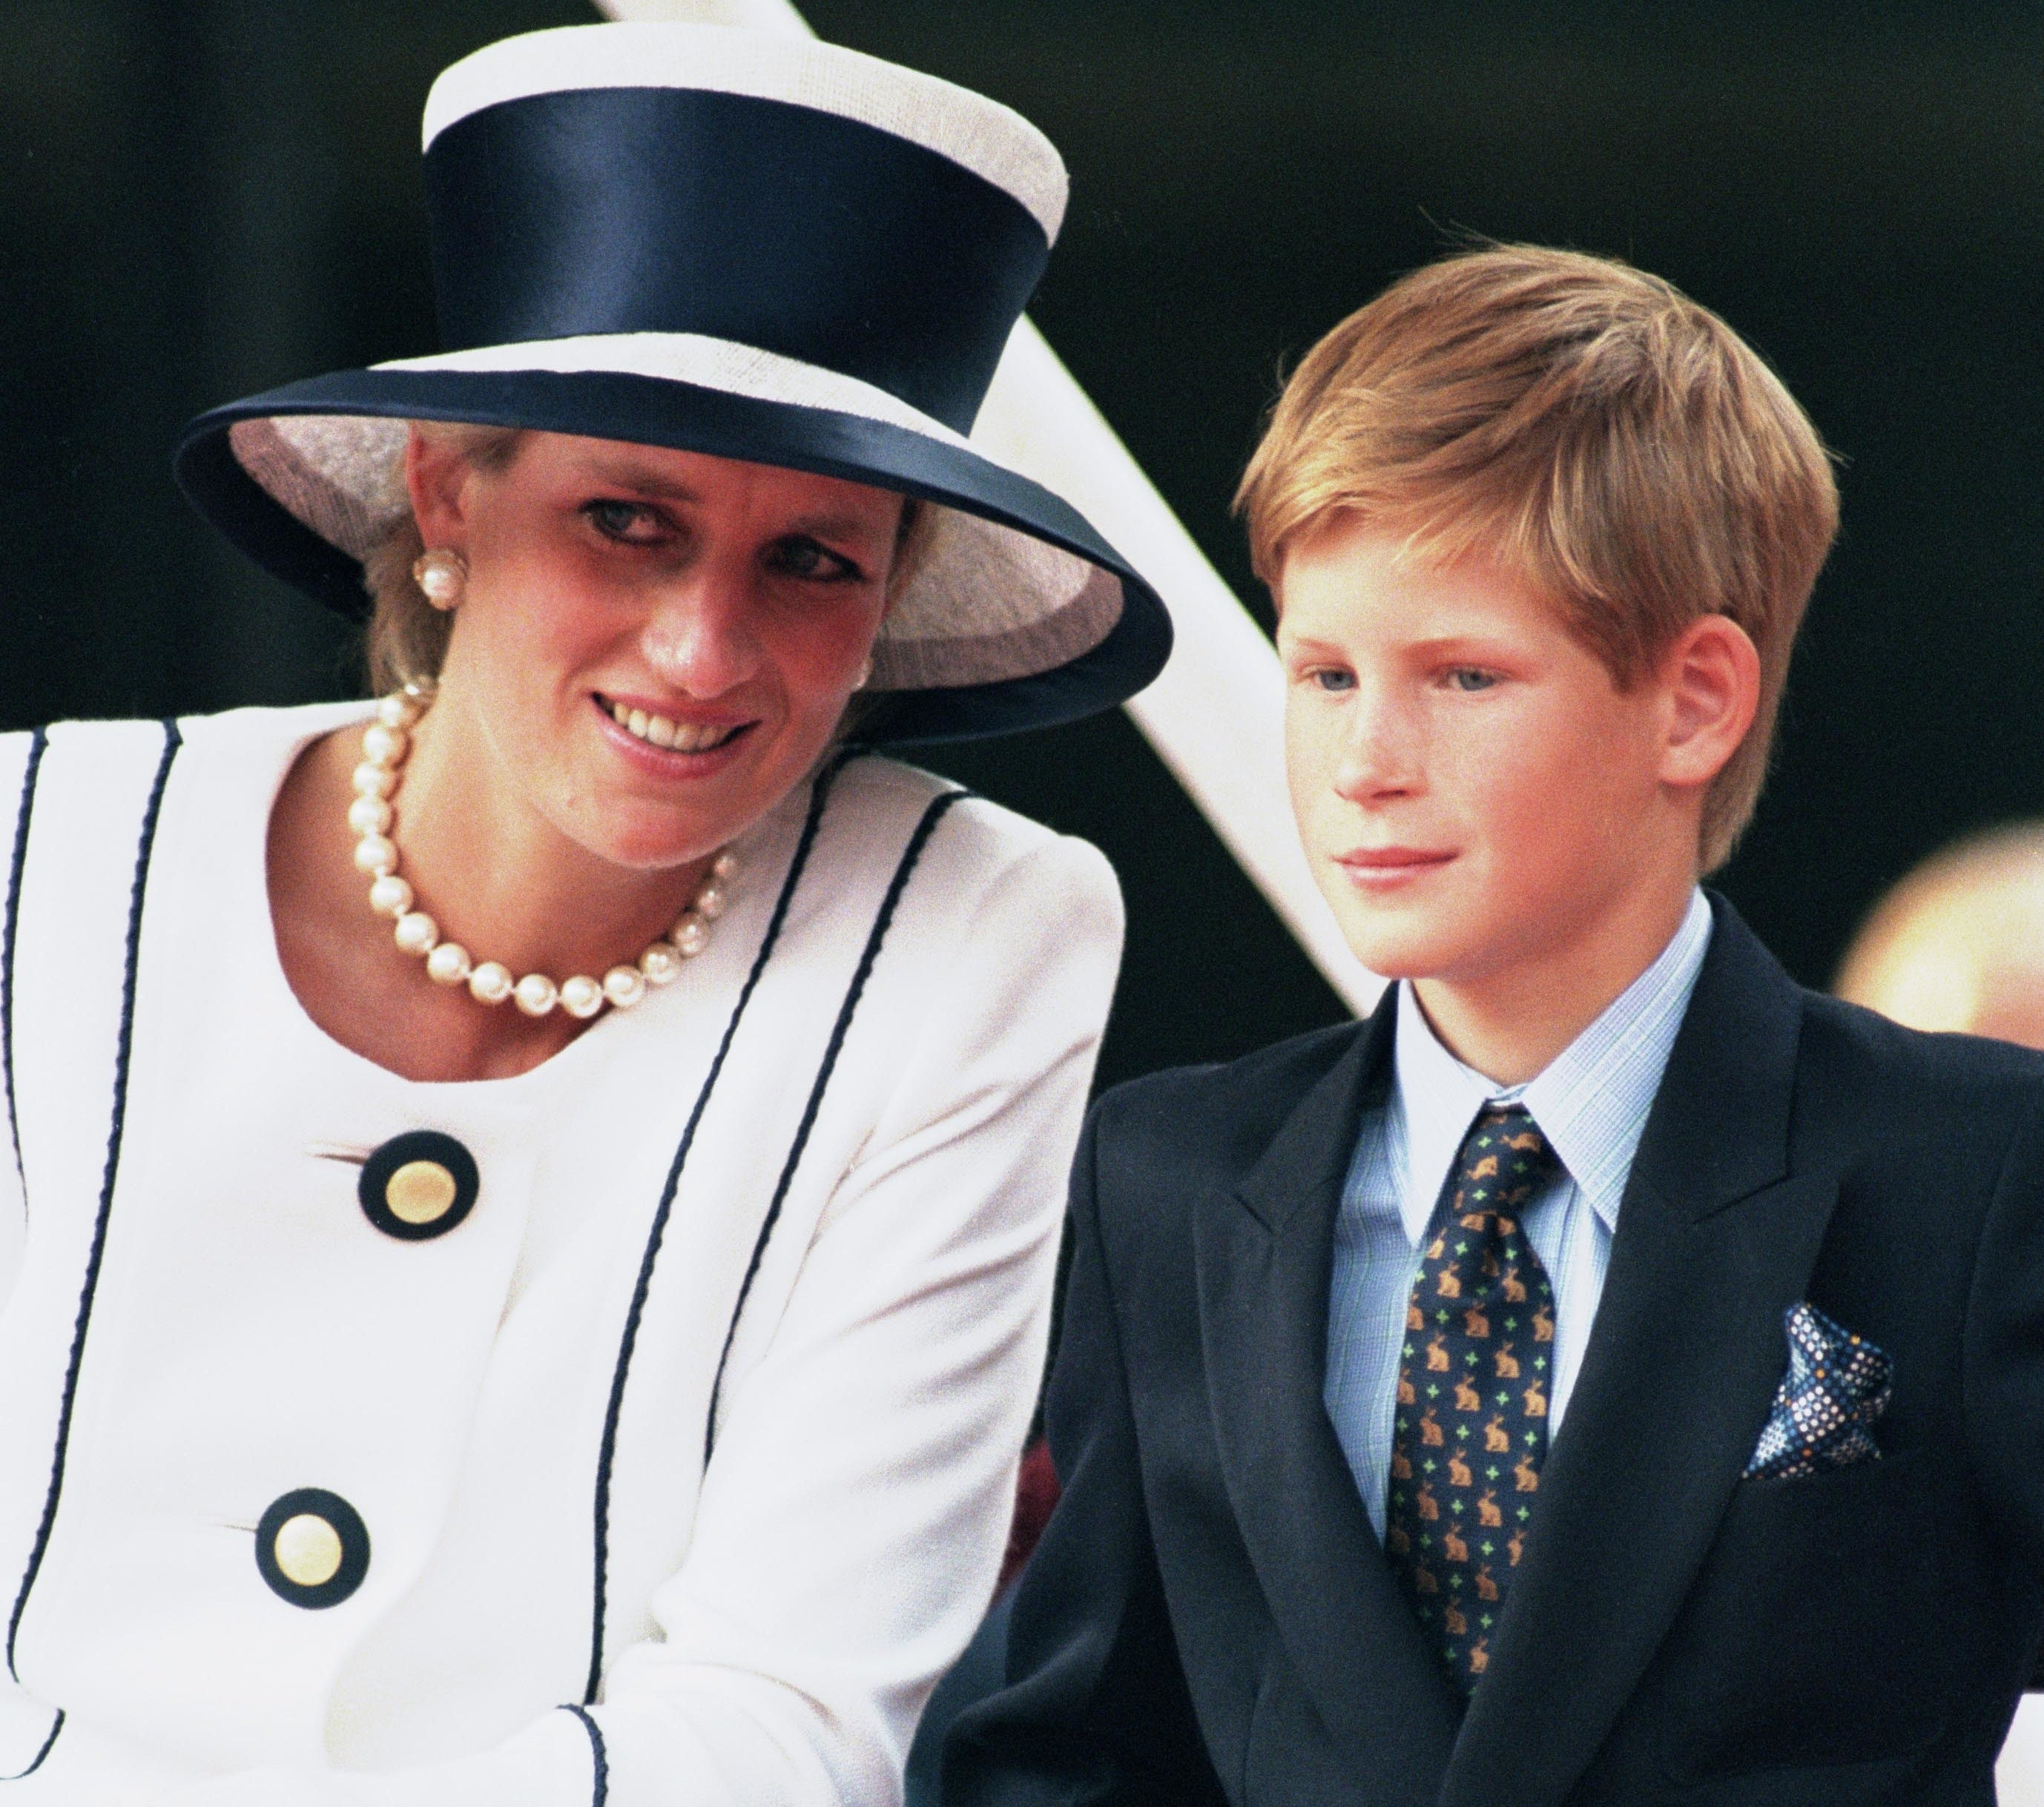 A young Harry with his mother, Princess Diana